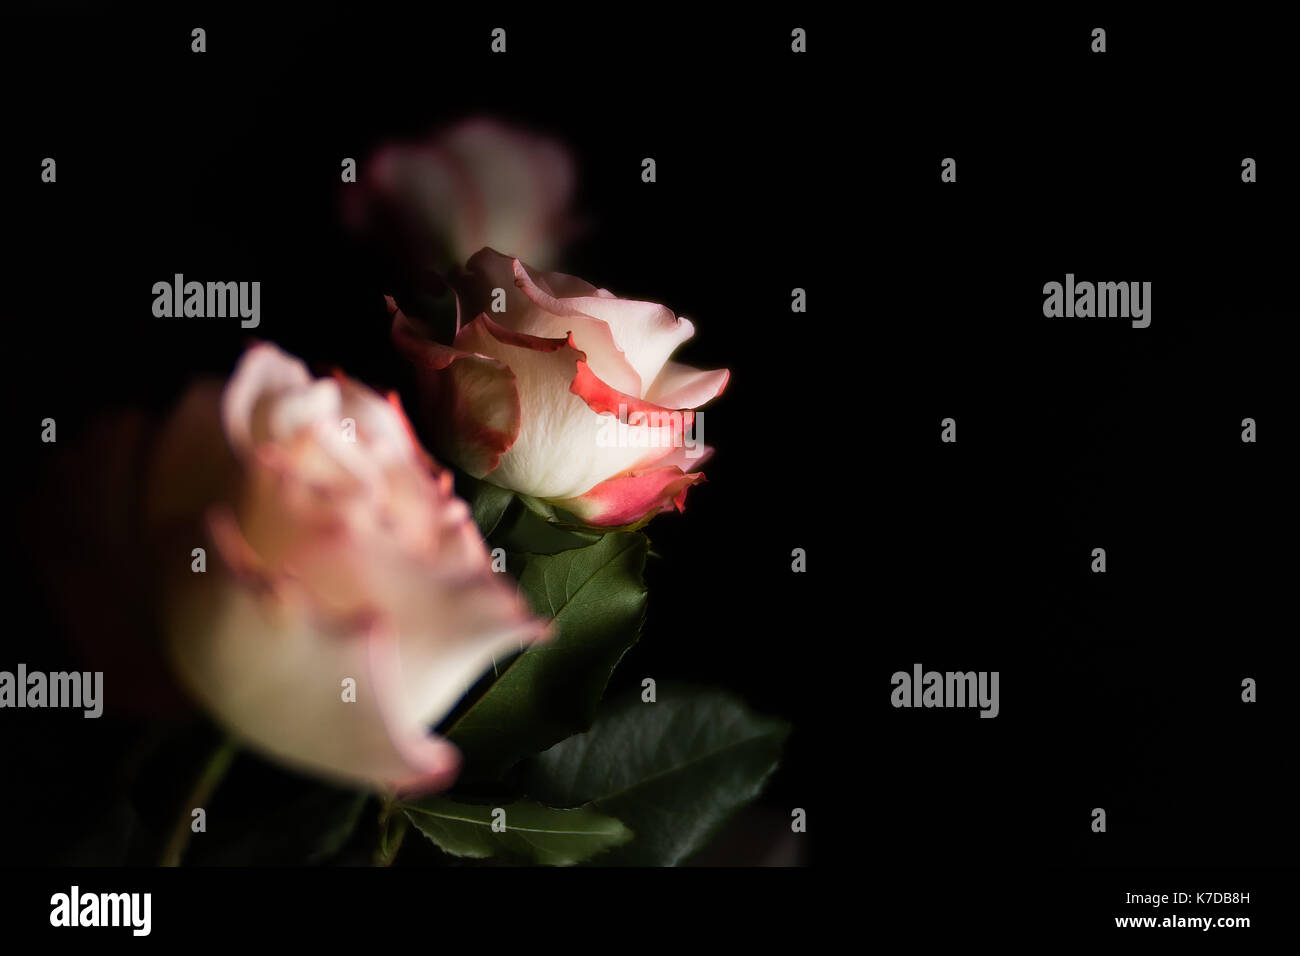 Close-up roses against black background - Stock Image